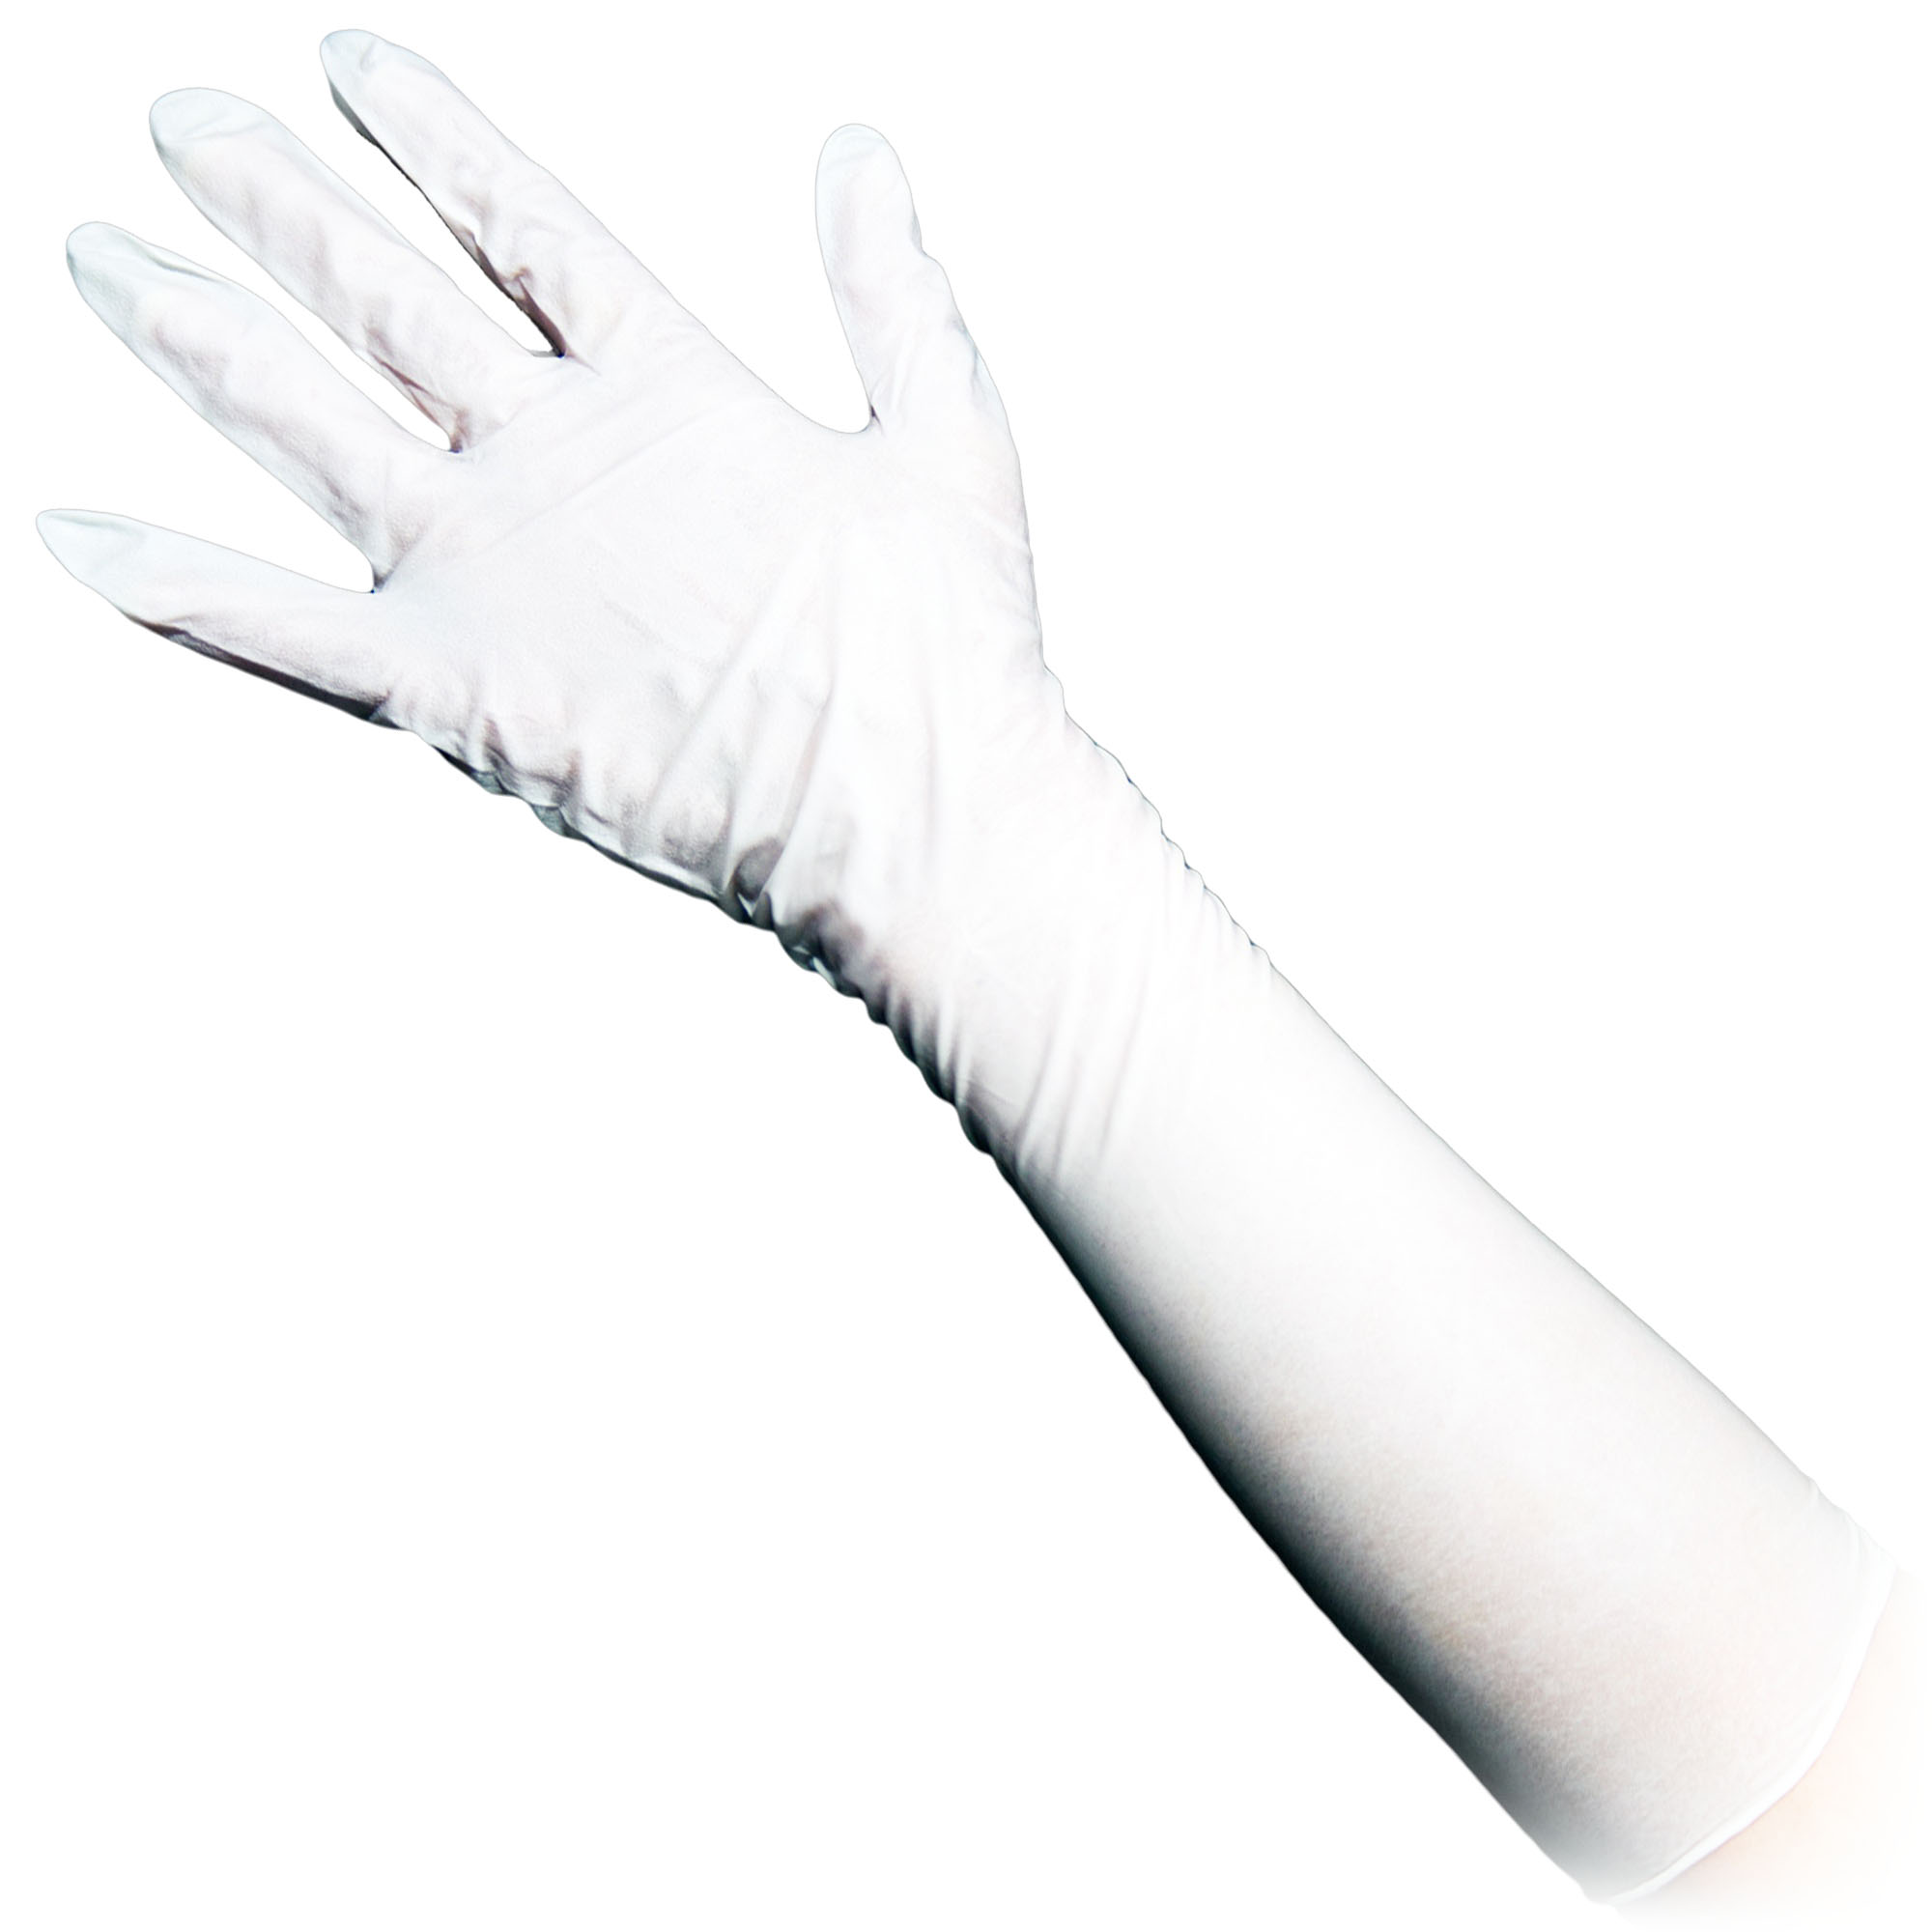 Protective Gloves Image